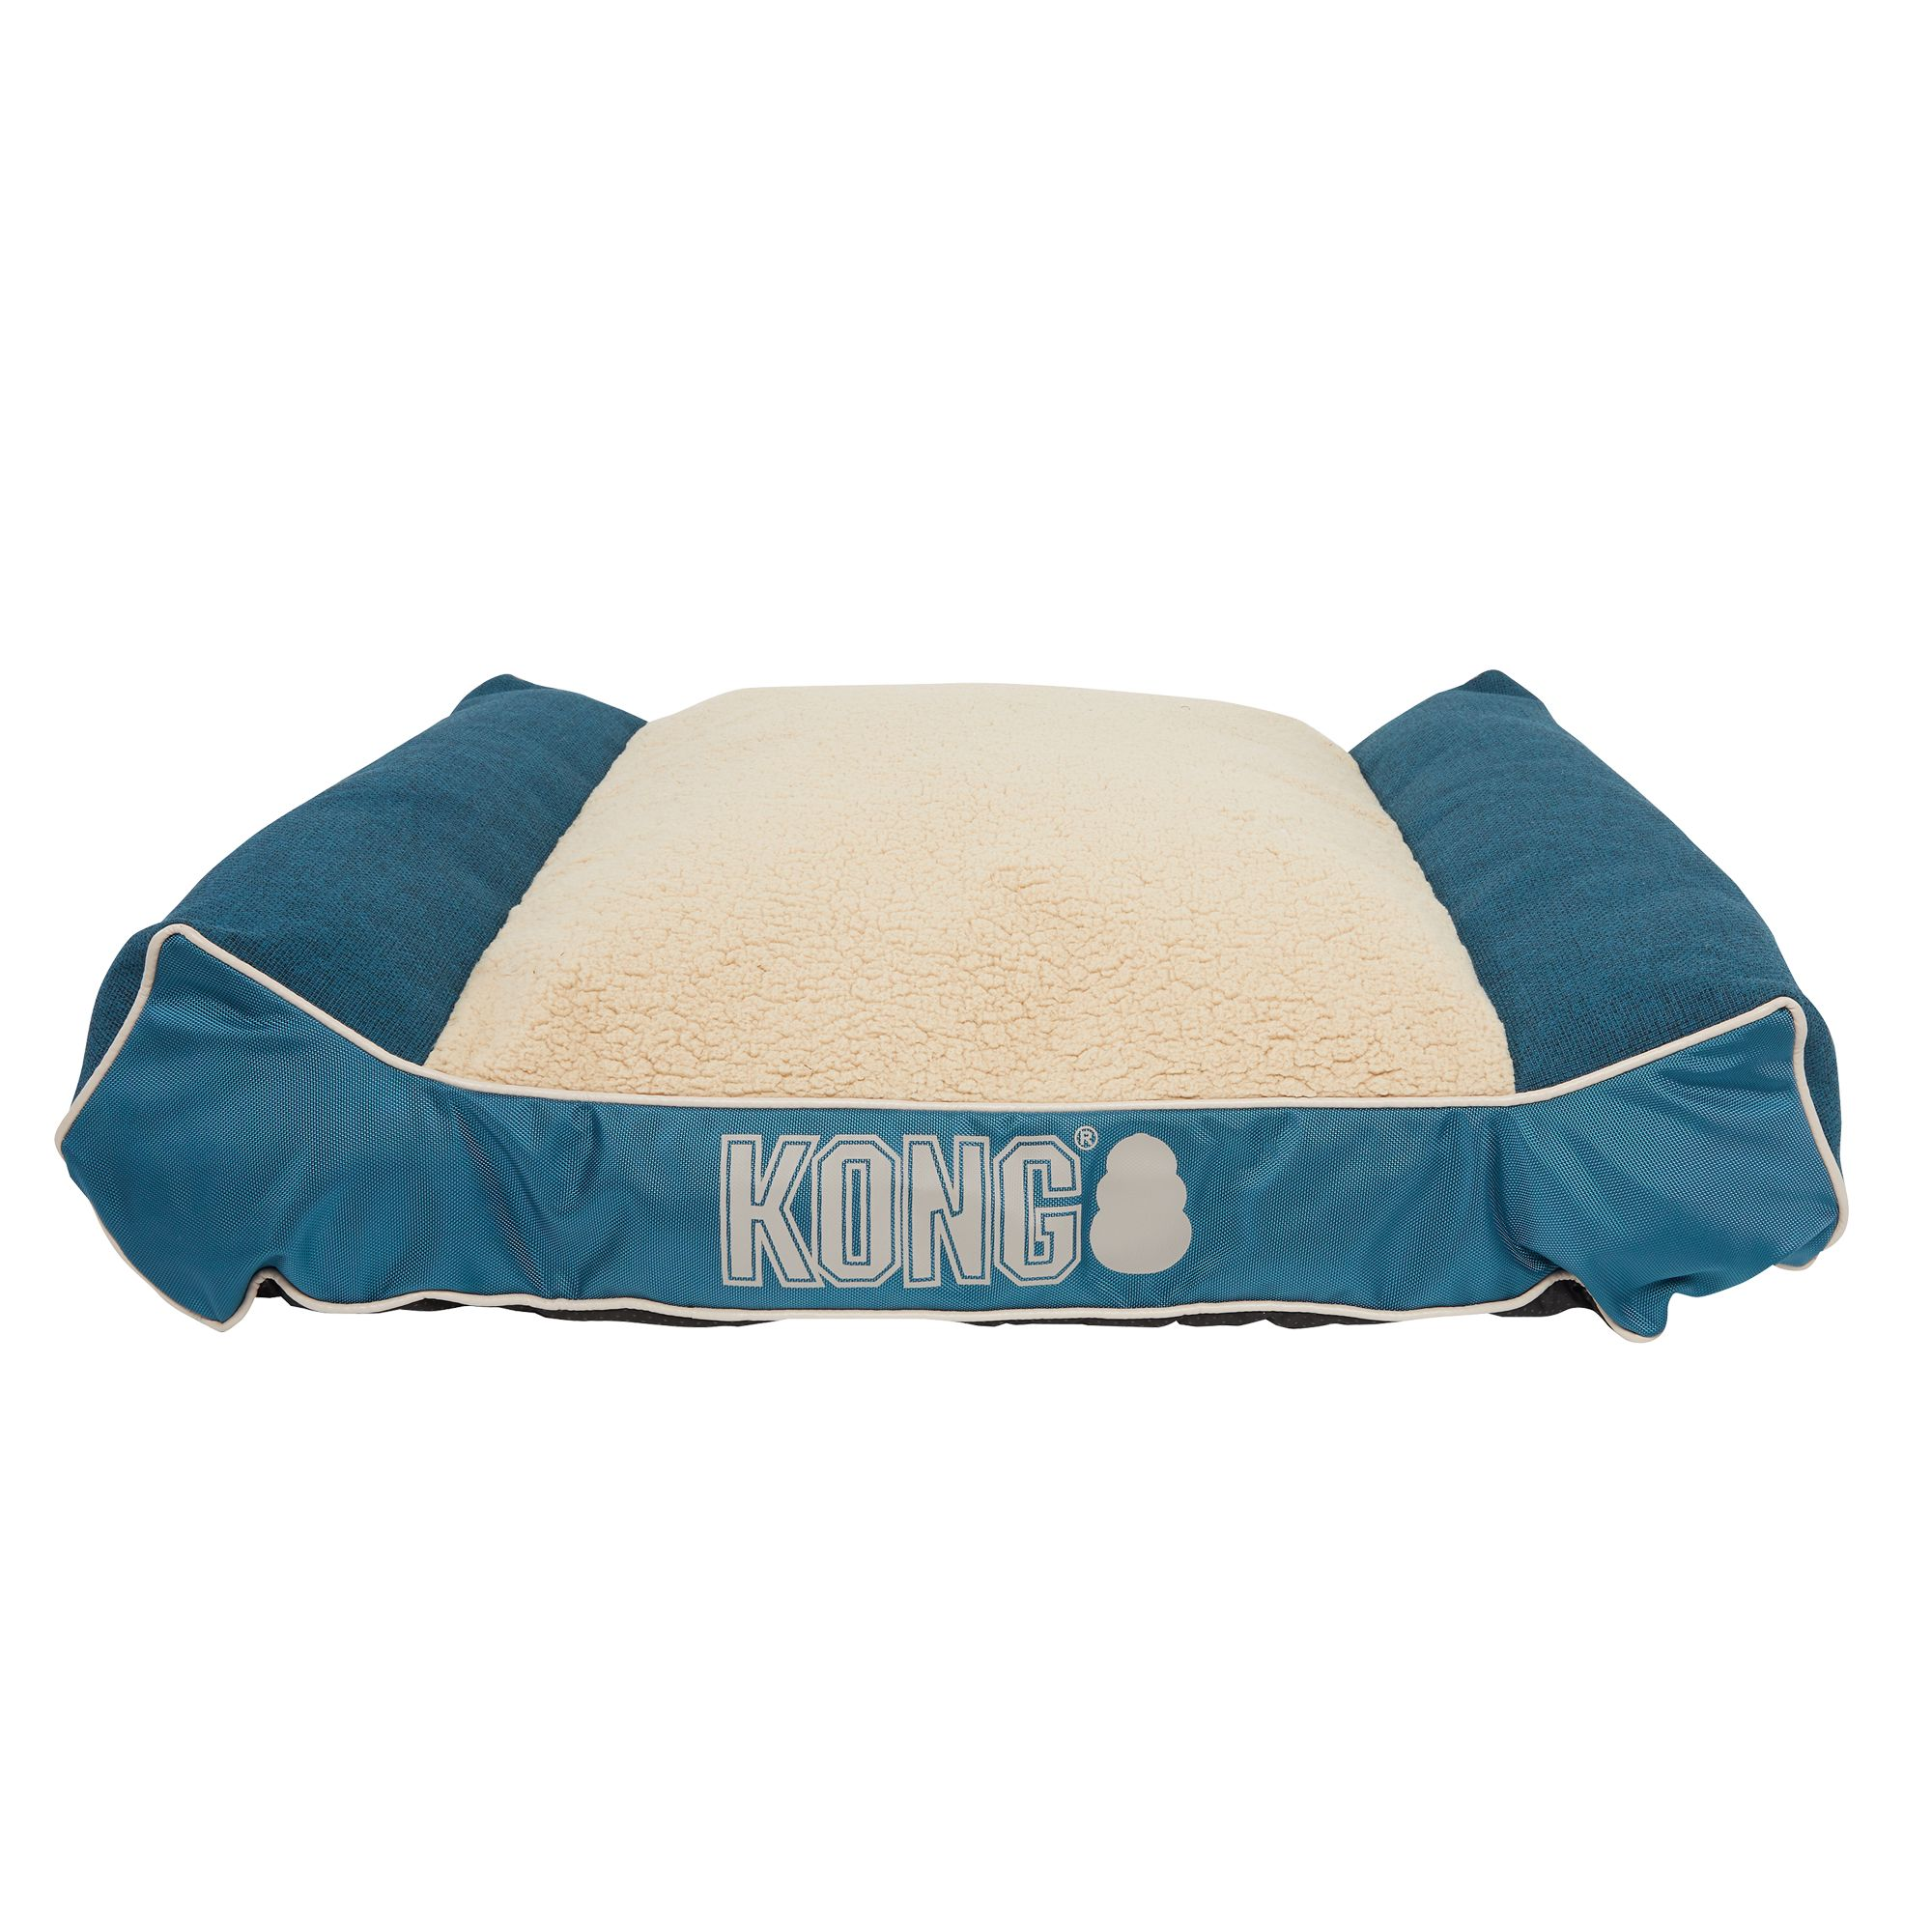 KONG® Lounger Dog Bed Dog pillow bed, Dog bed, Bed pillows